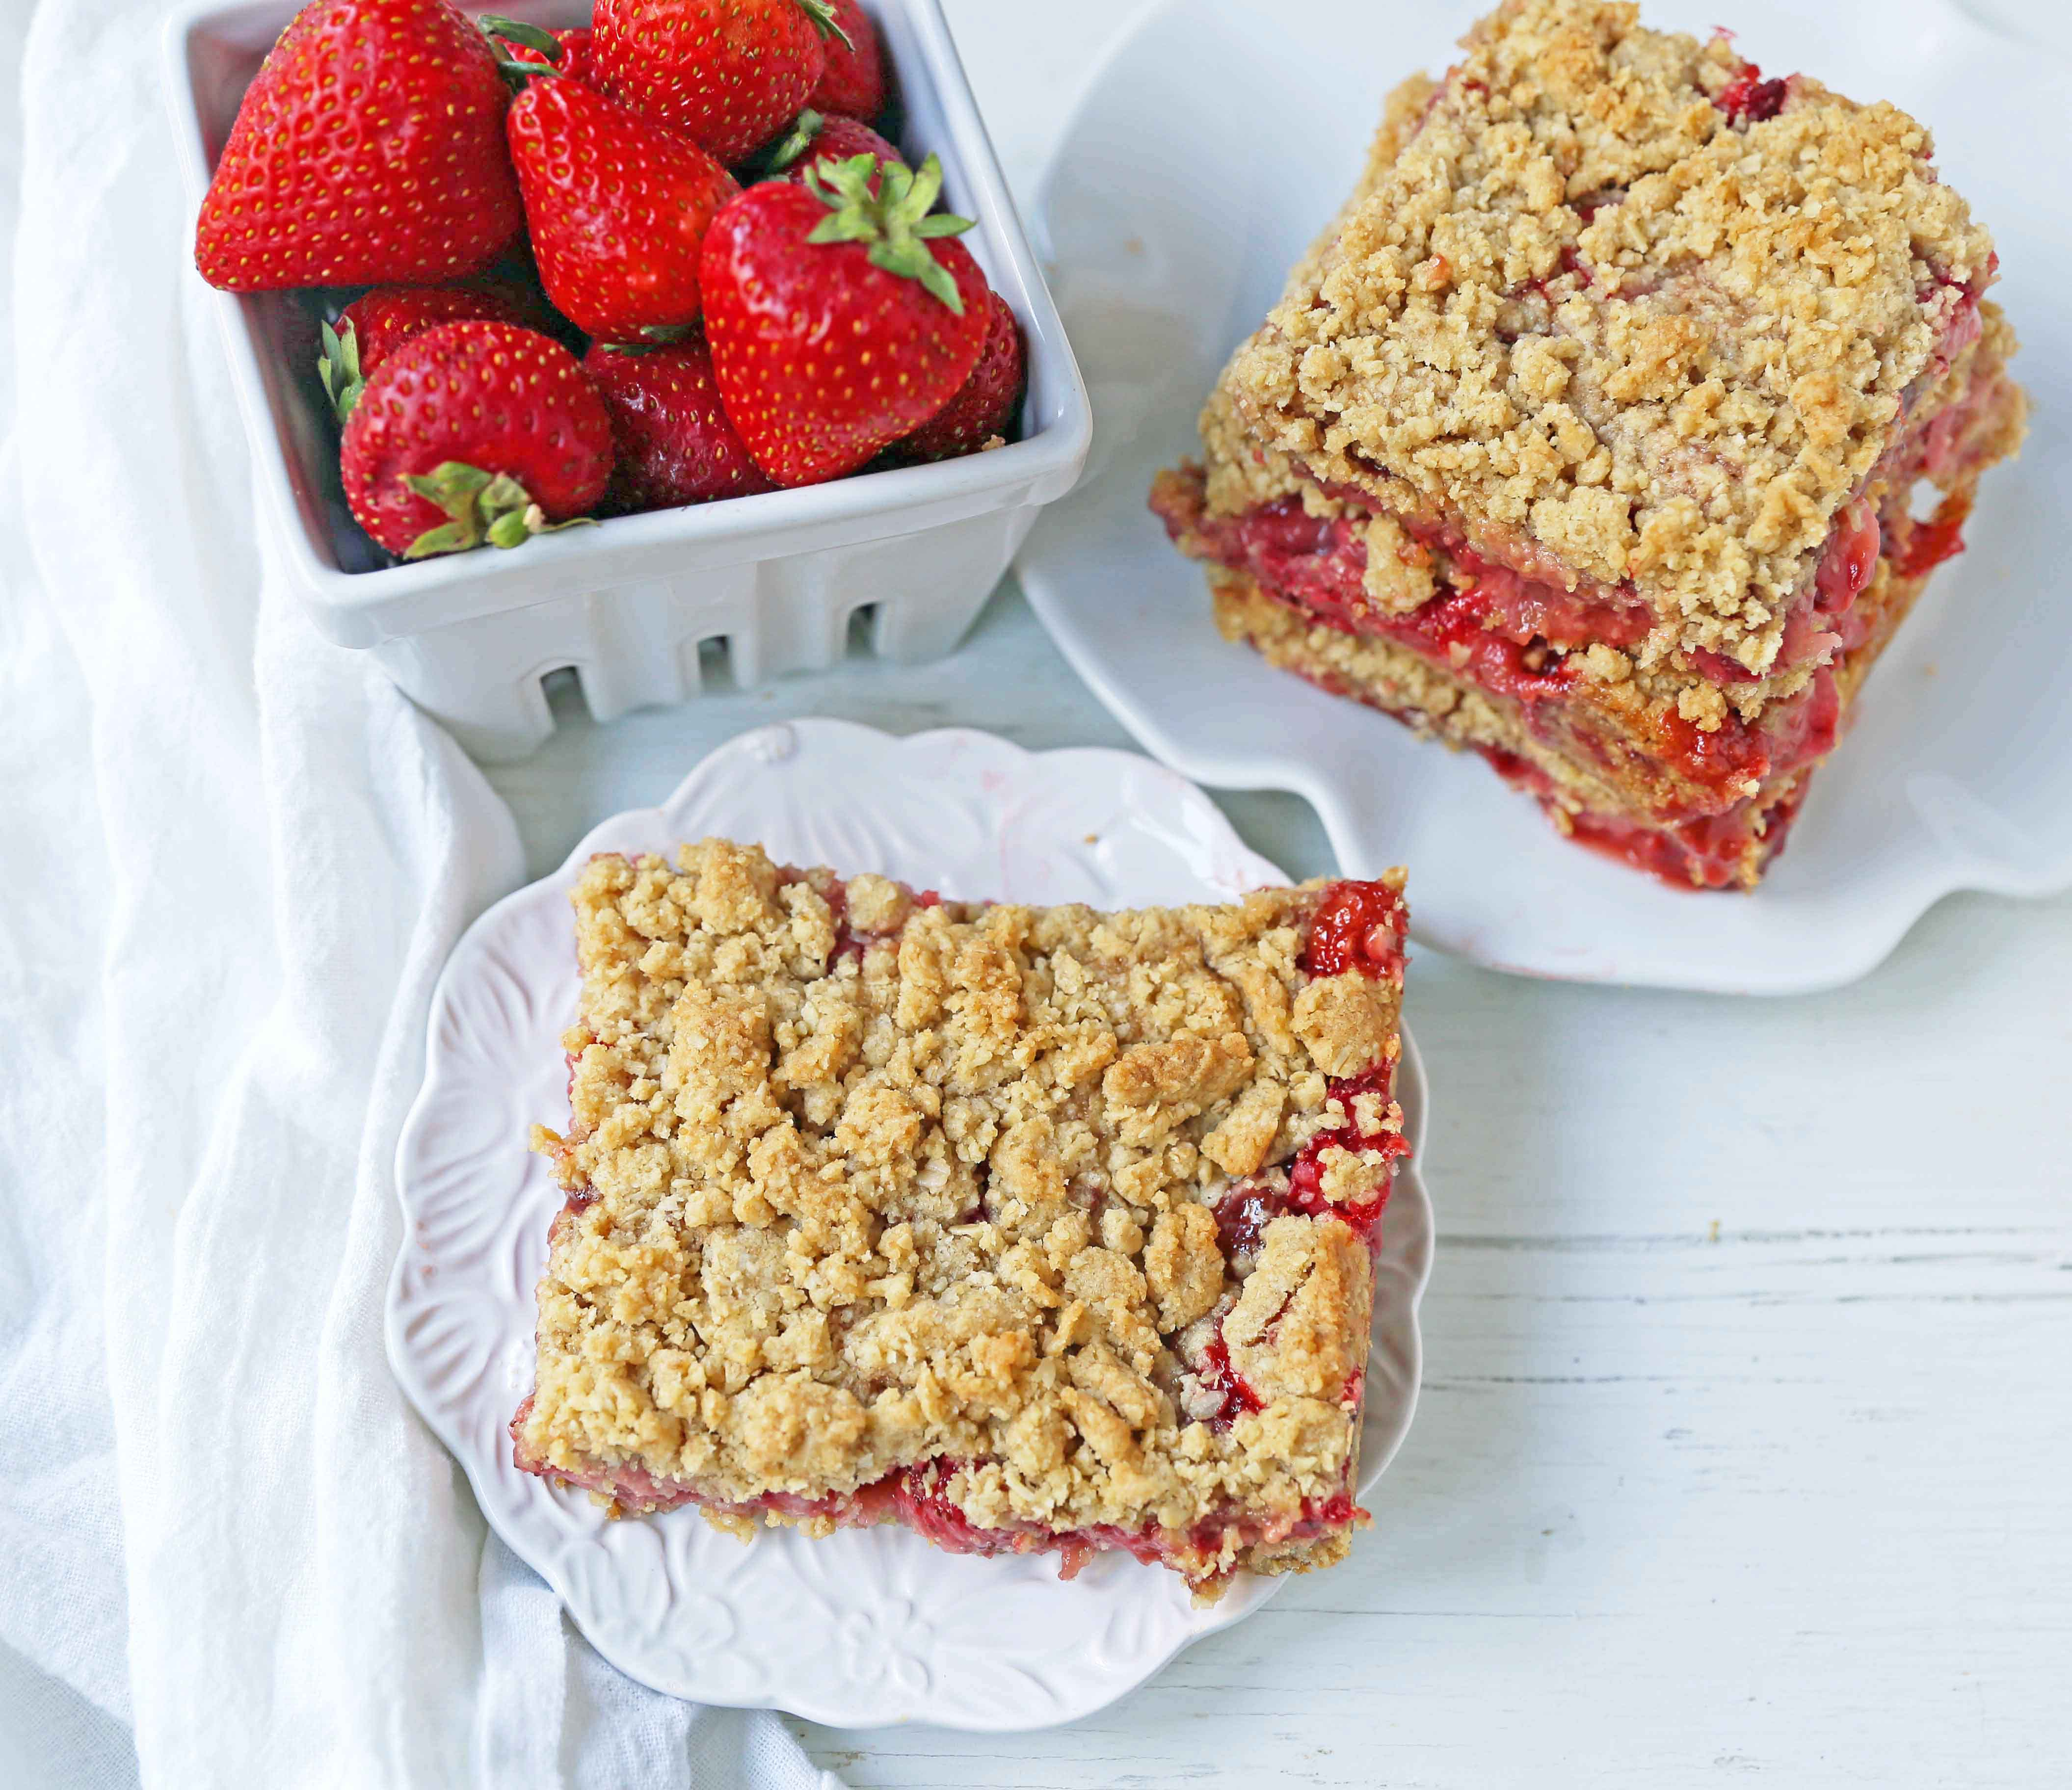 Strawberry Oat Crumble Bars Recipe. Homemade Strawberry Crumble Bars. The perfect Summer dessert bar using fresh strawberries. Strawberry Oatmeal Crumble Bars are made with a buttery oatmeal crust and a fresh strawberries and jam filling. www.modernhoney.com #strawberrybars @strawberryoatbars #strawberryoatmealbars #strawberryrecipes